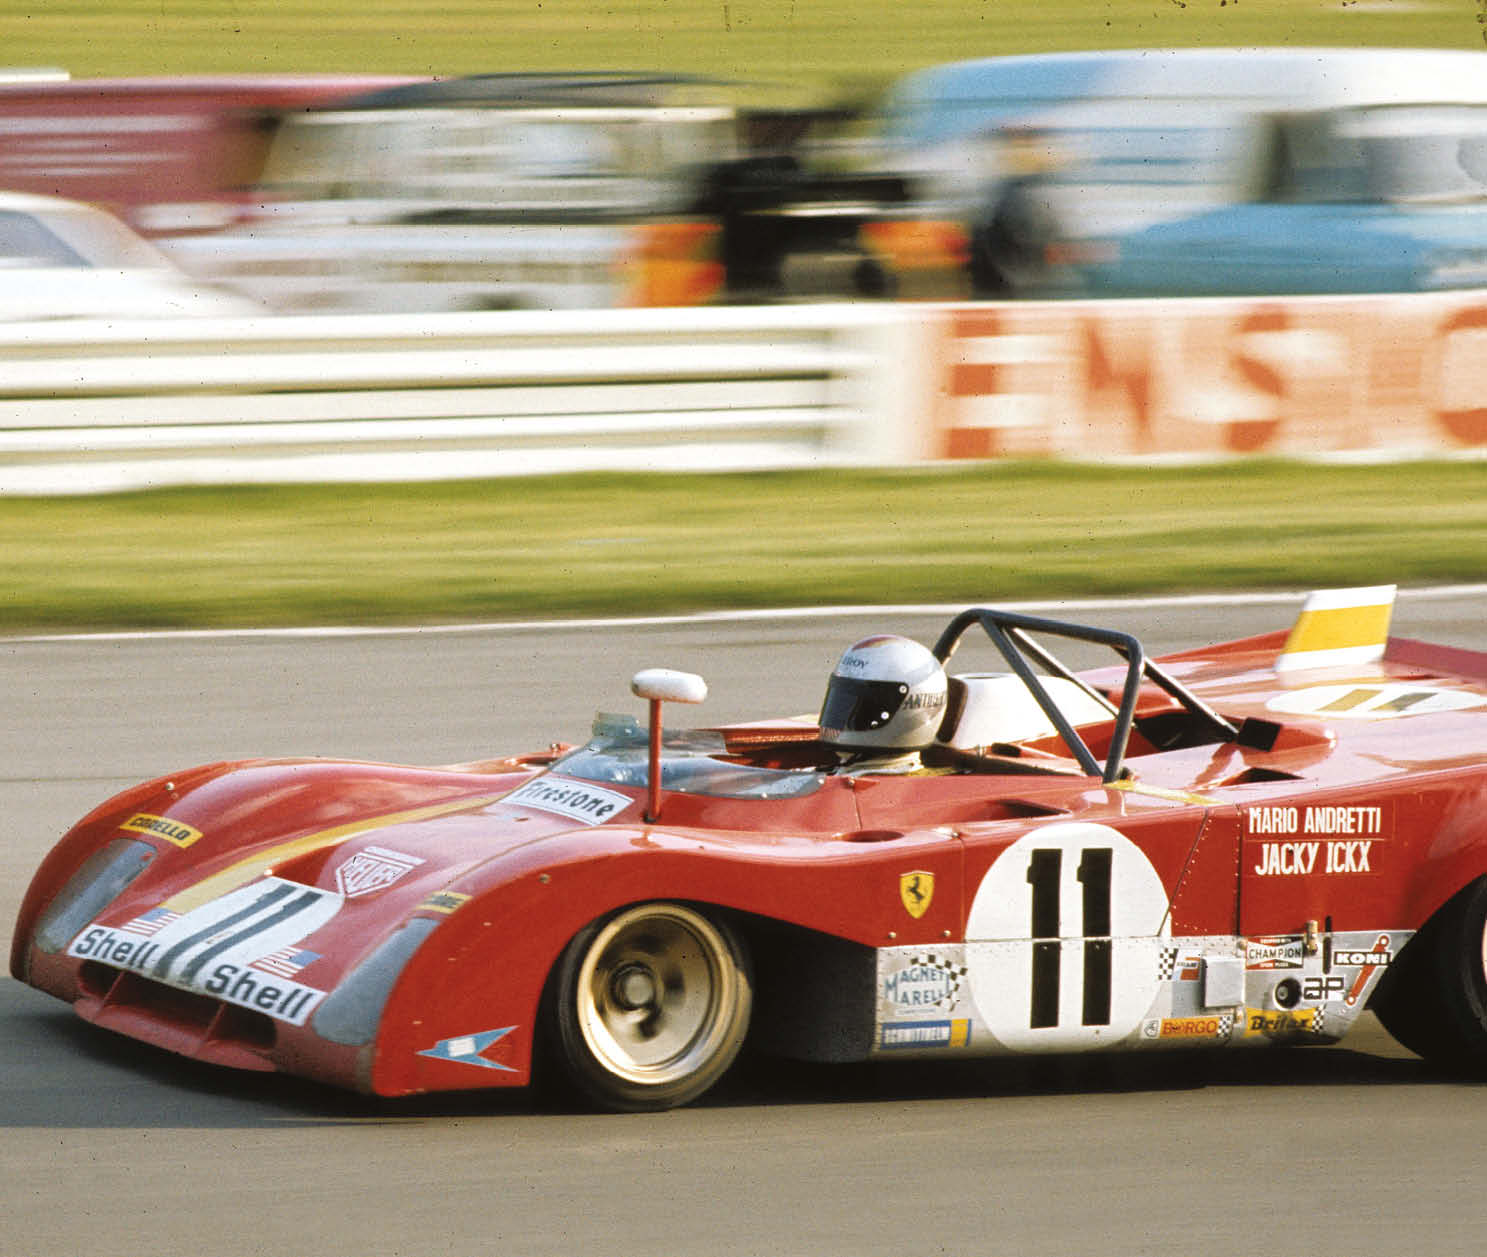 Mario Andretti & Jacky Ickx took their third straight success as Ferrari continued its World Sportscar Championship domination